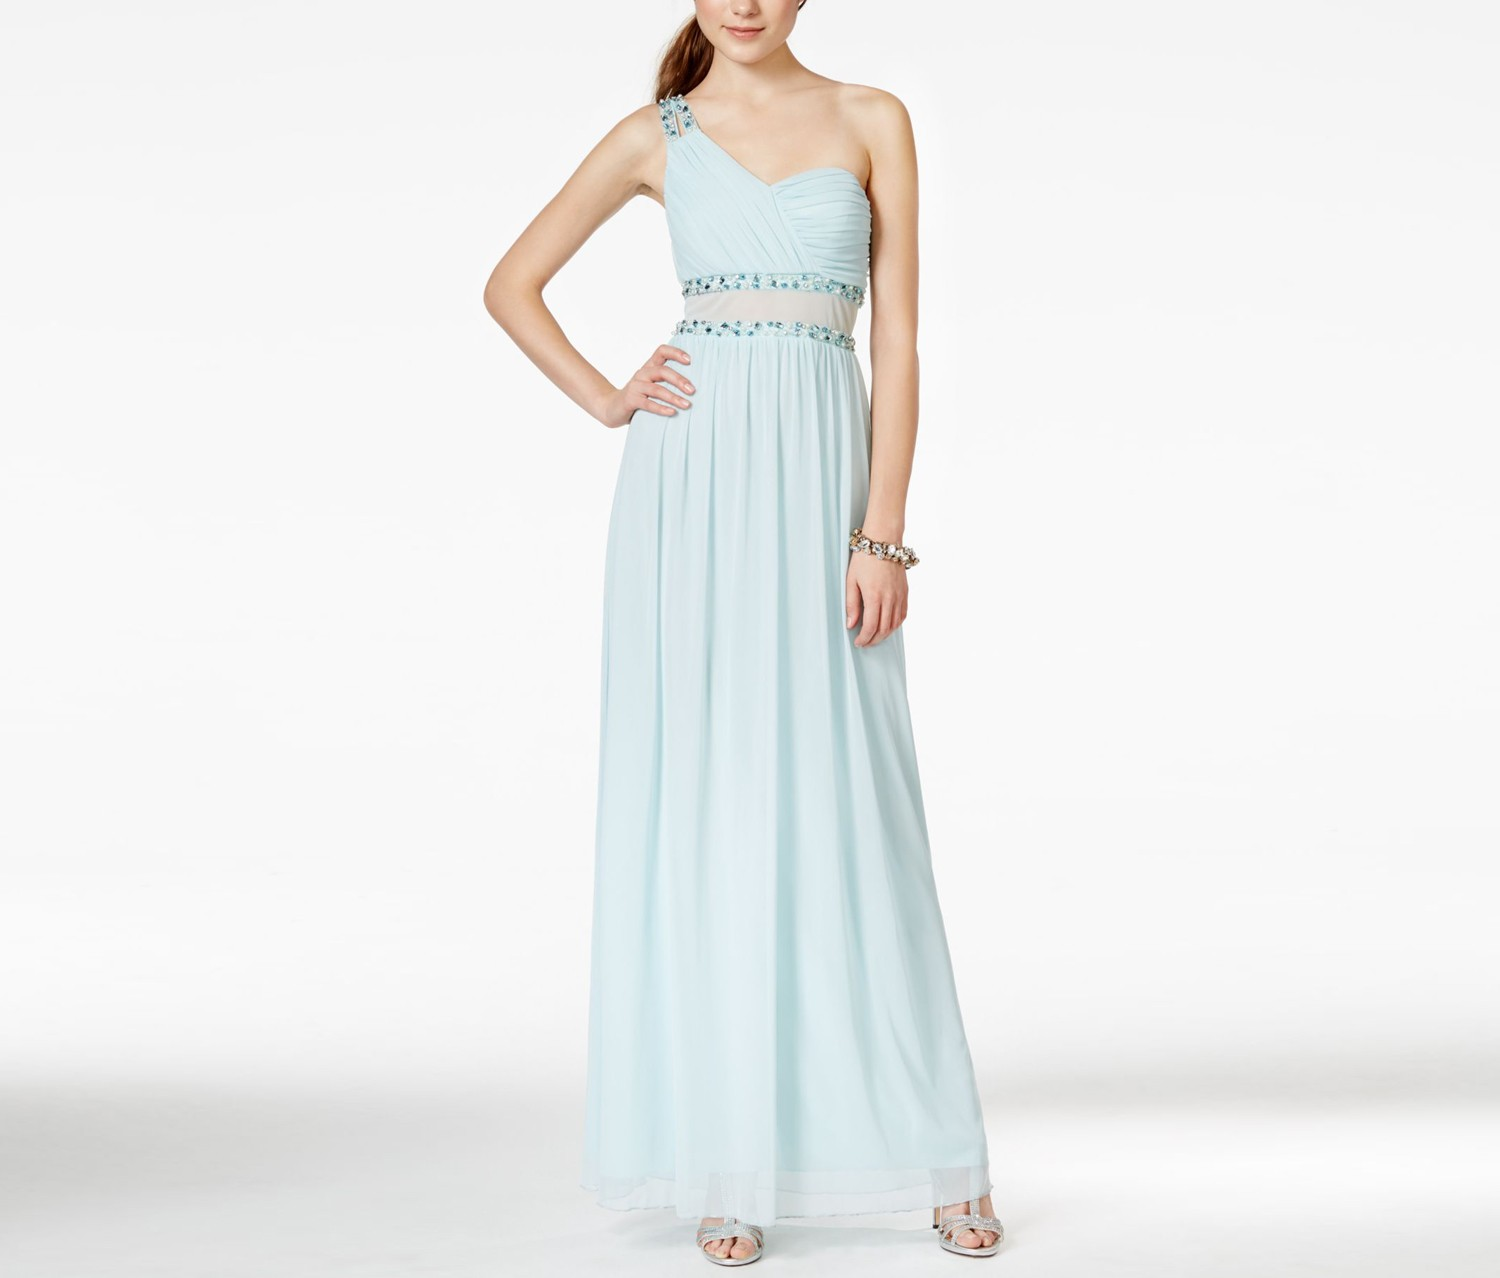 City Studios Juniors One-Shoulder Illusion Gown, Frosty Mint